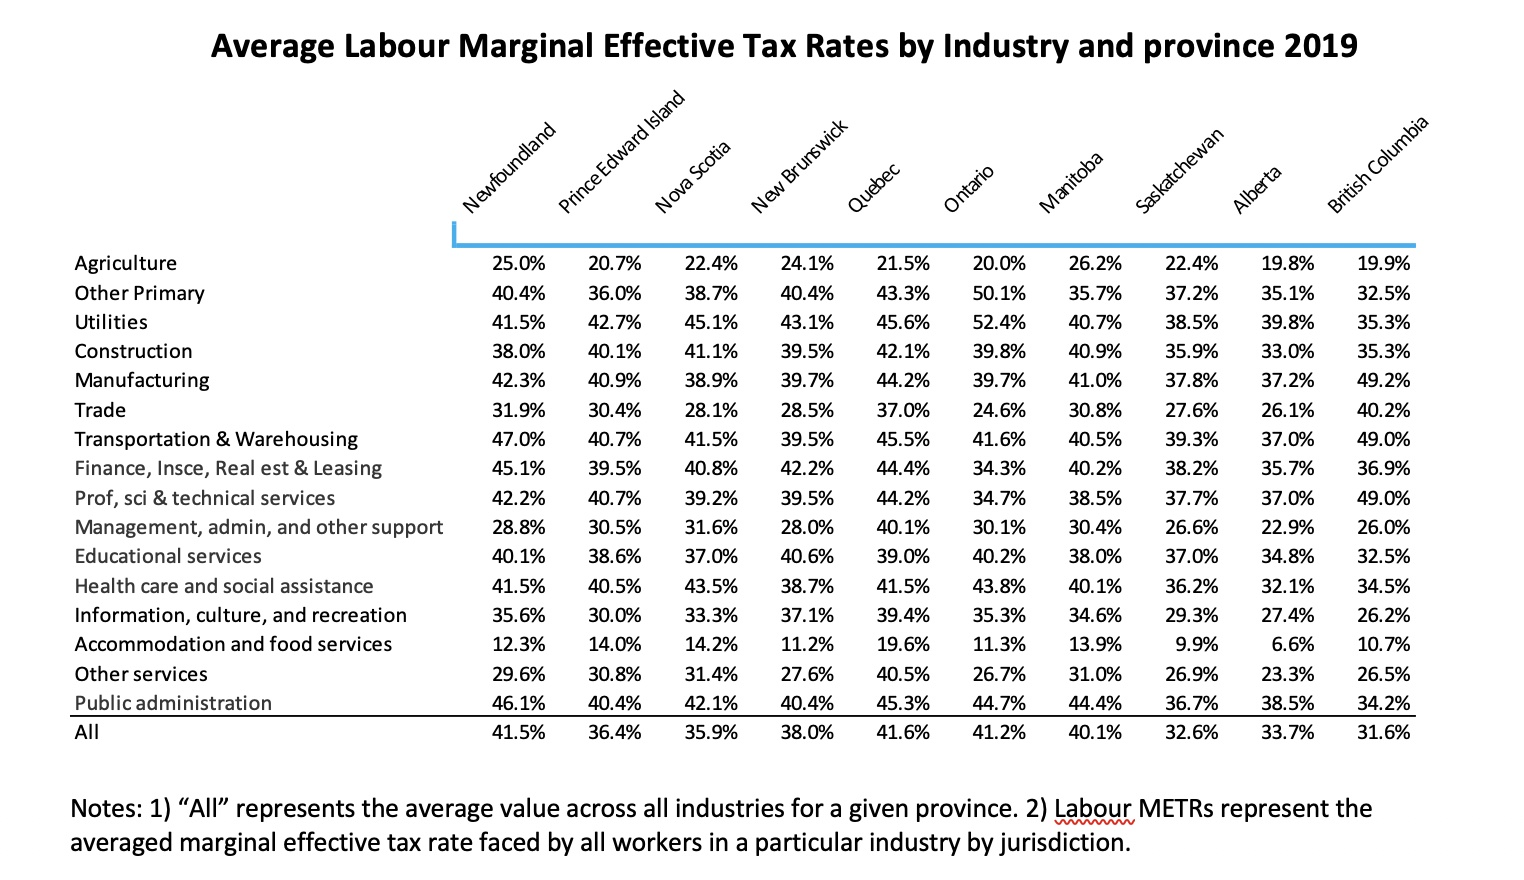 Table showing marginal tax rates by industry and province